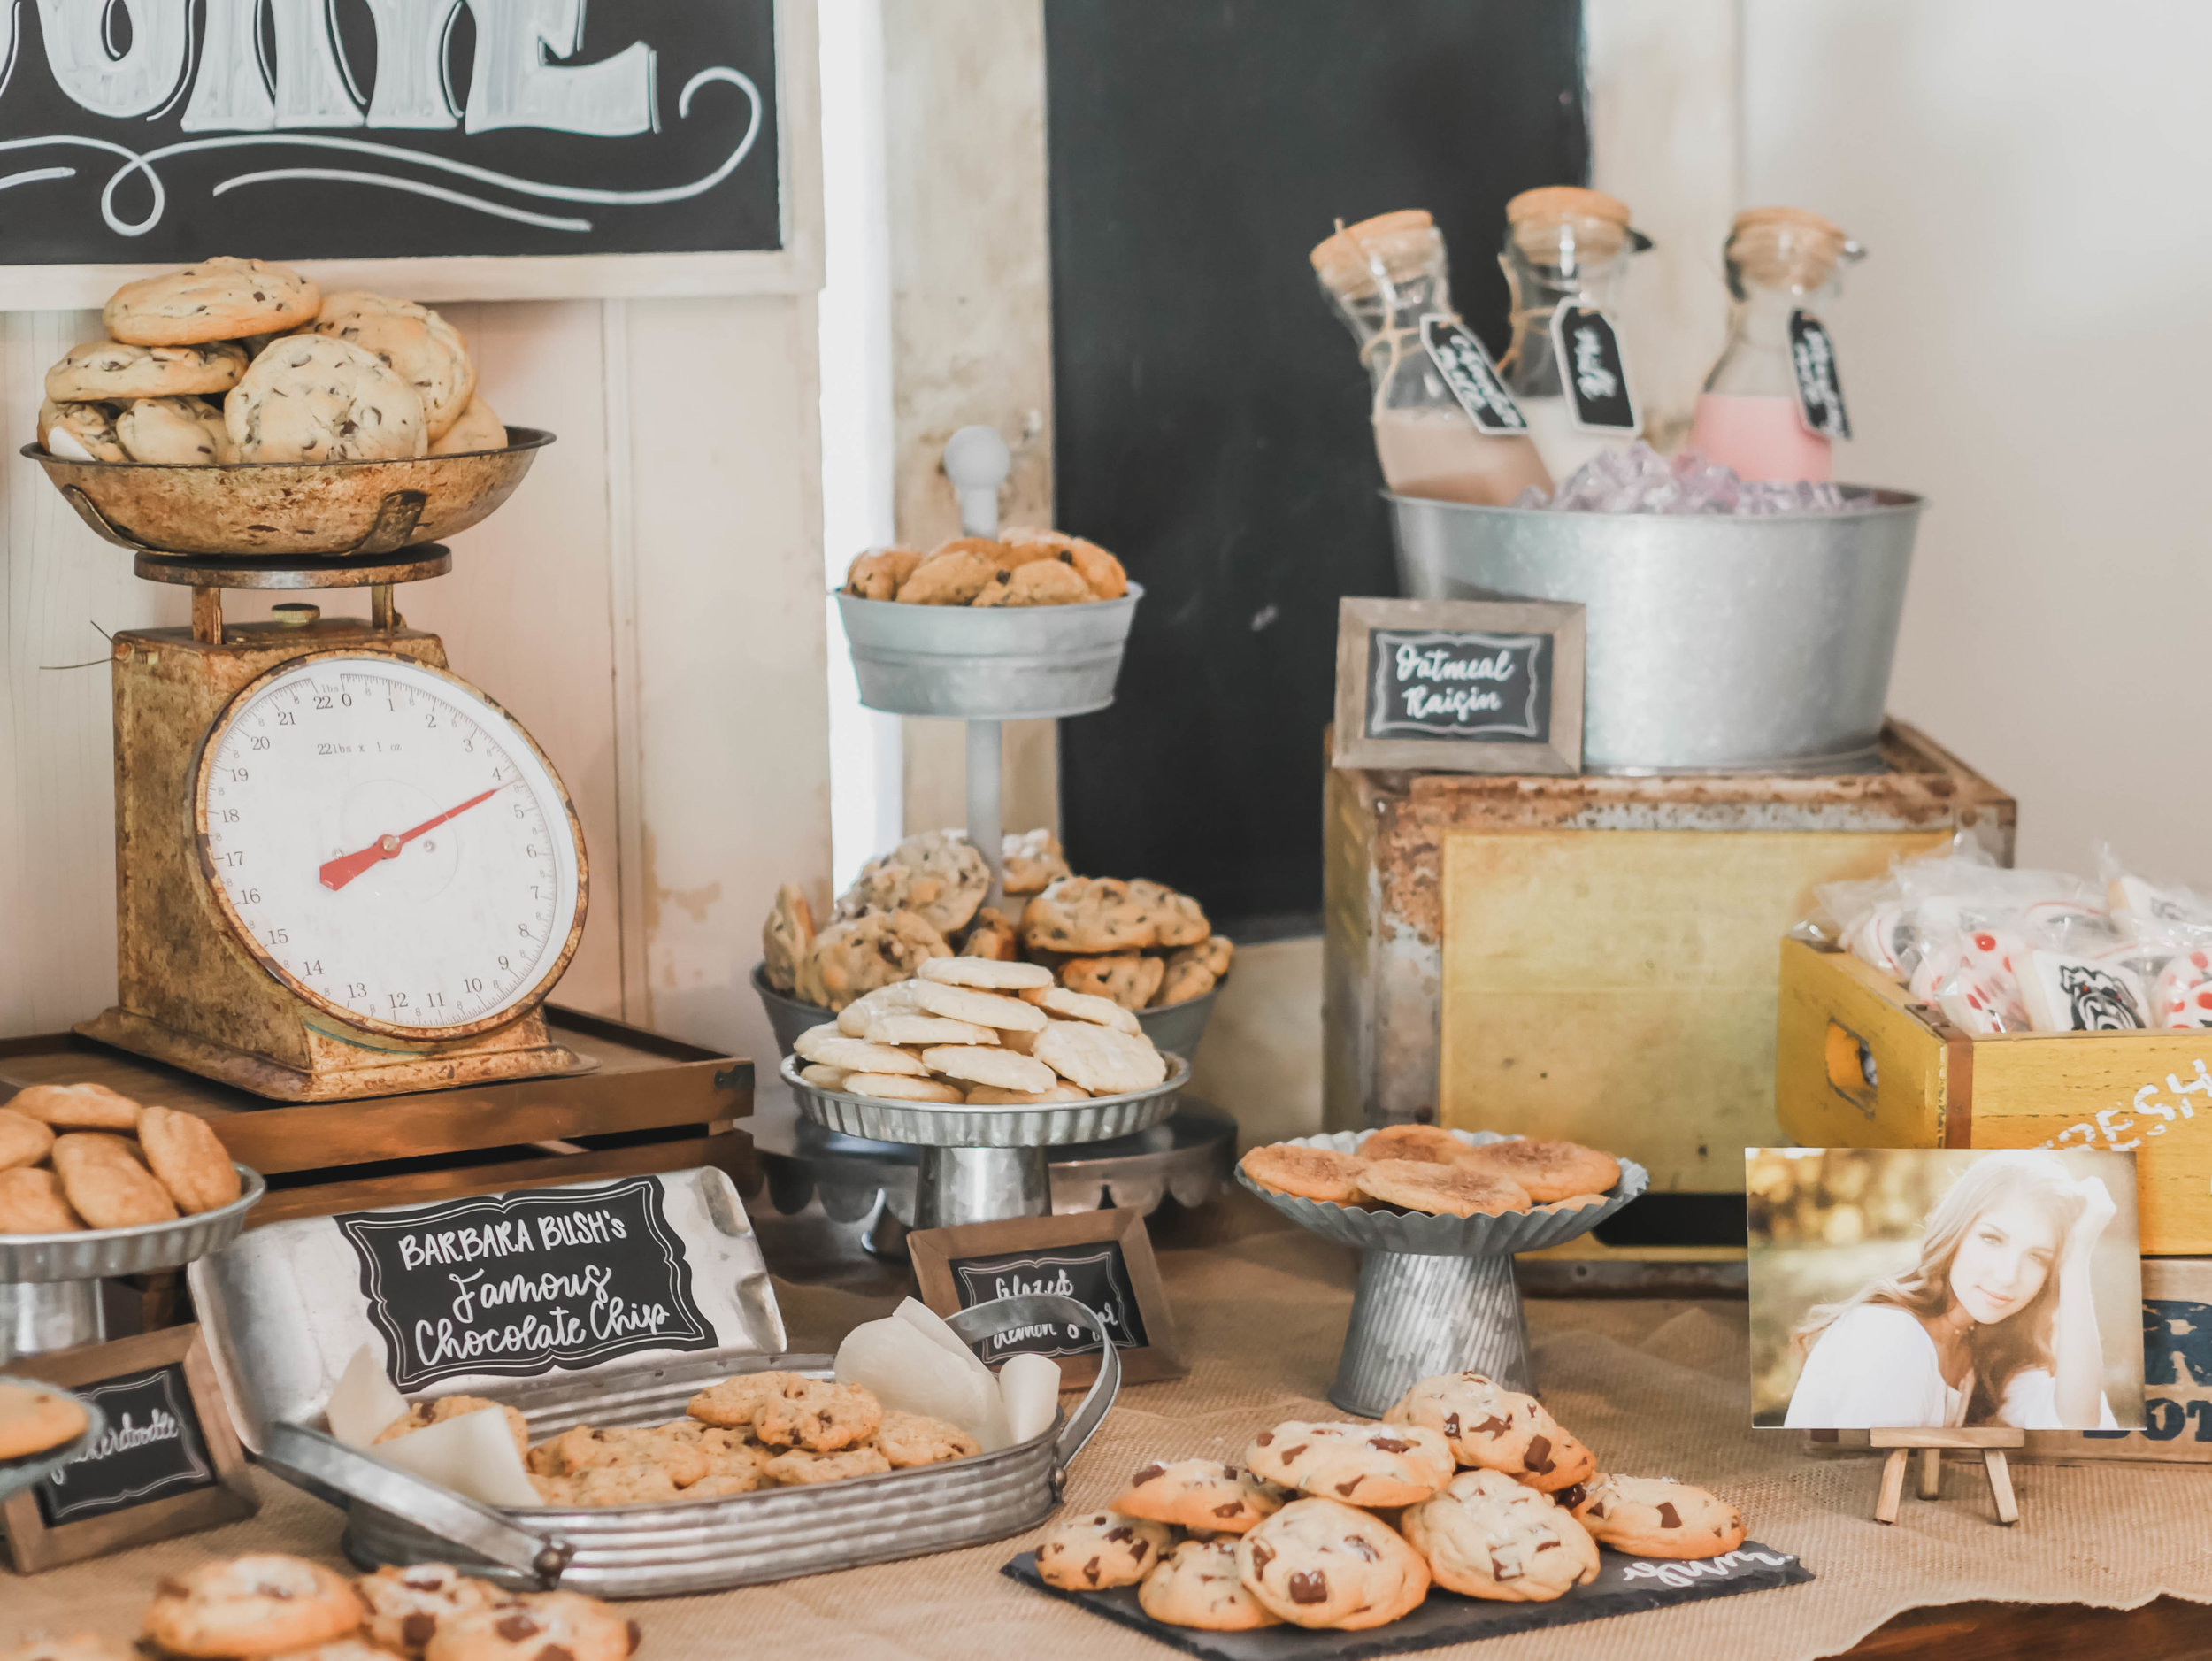 Rustic serving platters and galvanized metal create the perfect farmhouse feel at this One Smart Cookie Graduation party by Mint Event Design - party planner in Austin Texas www.minteventdesign.com #graduationparty #graduationpartyideas #partyideas #rusticpartyideas #partyinspiration #chalkboardsigns #desserttable